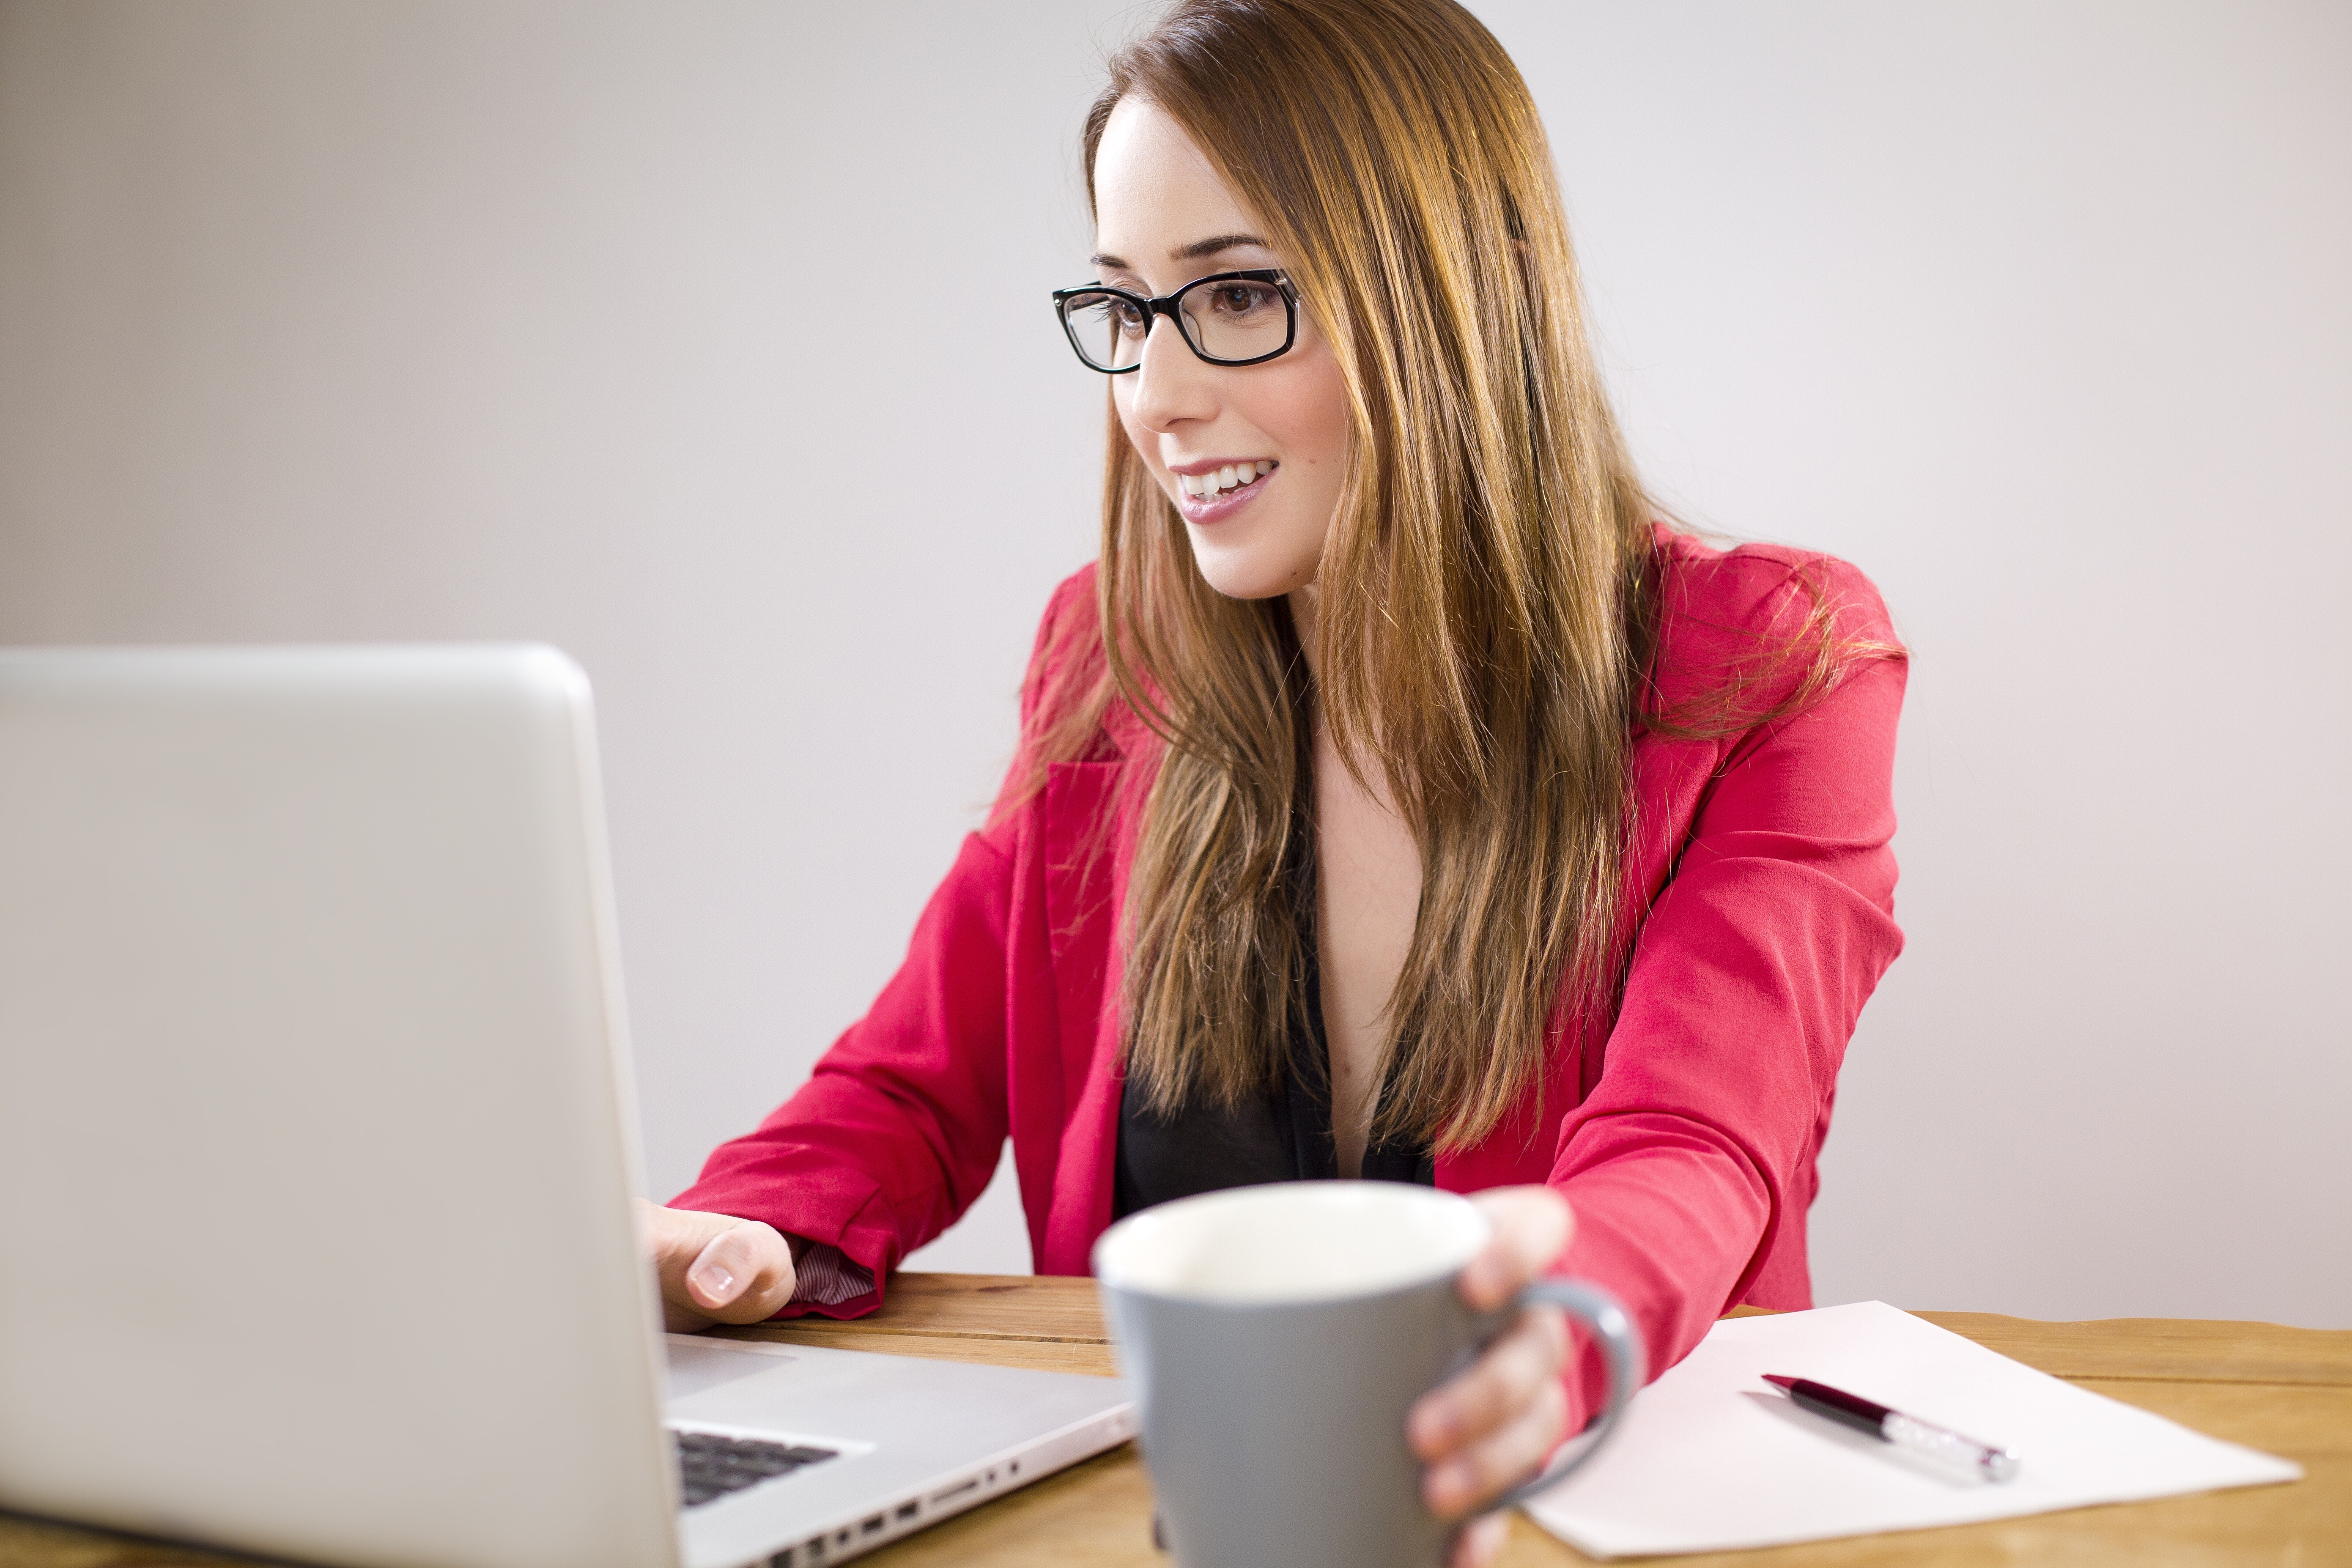 a woman sitting and smiling in fron of her laptop inside a clean office